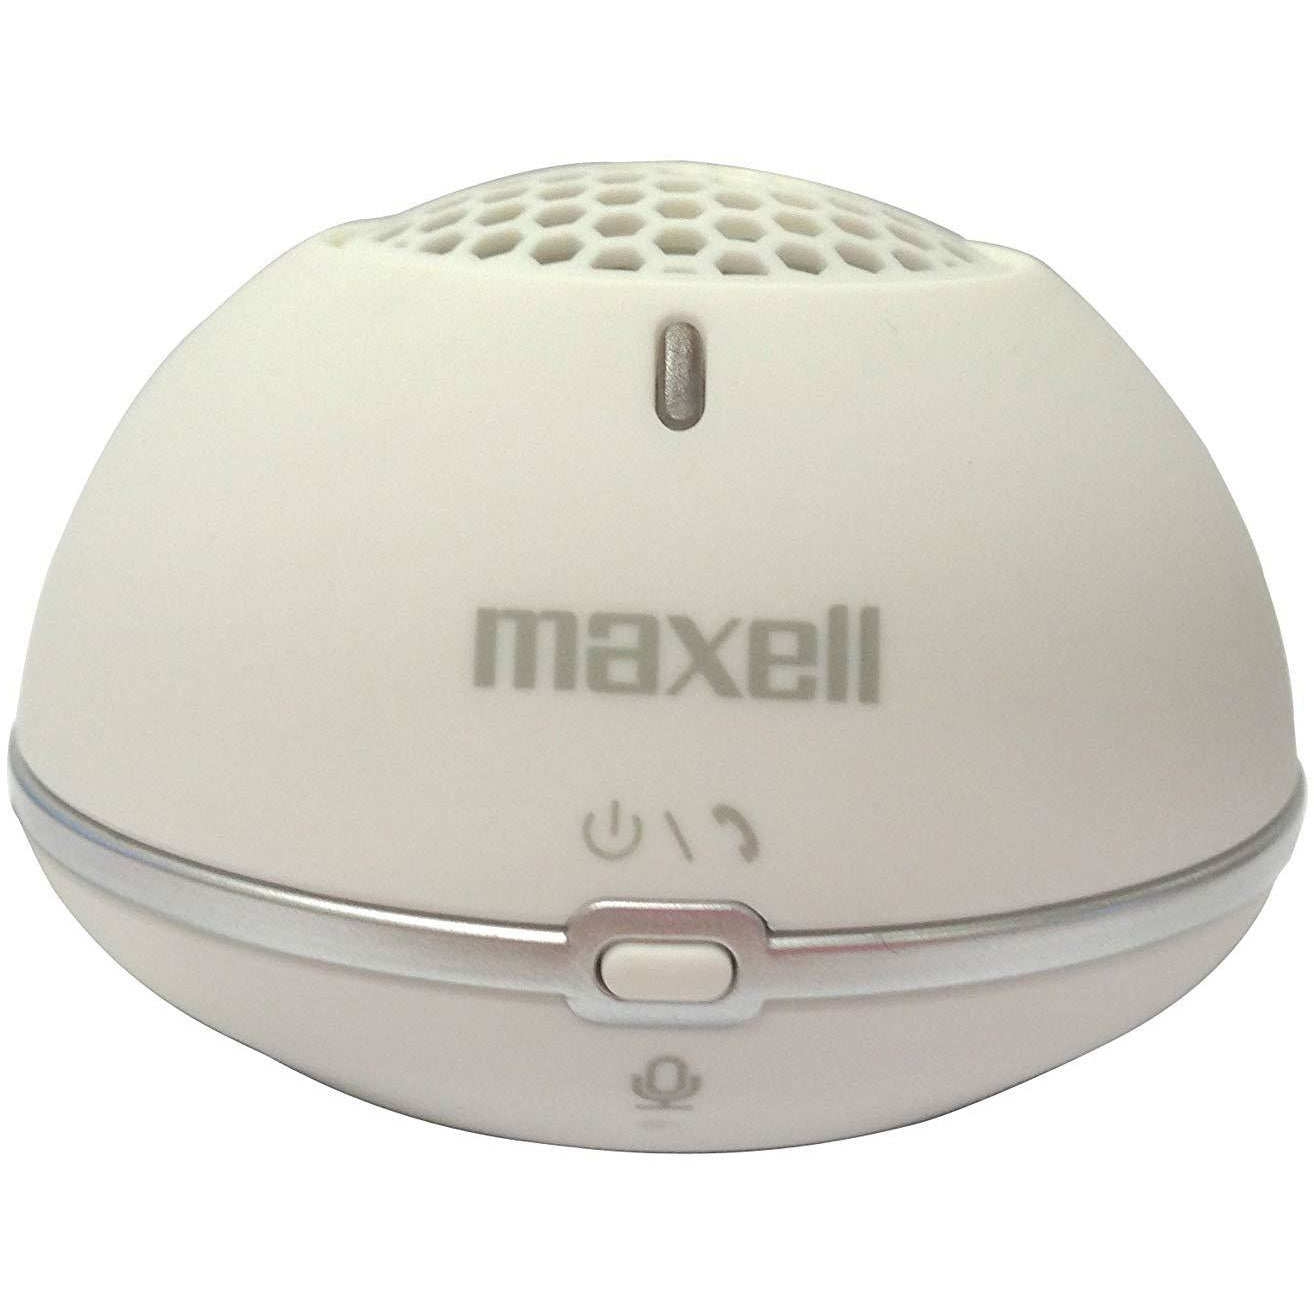 Maxell MXSP-BT01 3.0 Mini Bluetooth Speaker - White [Accessories]